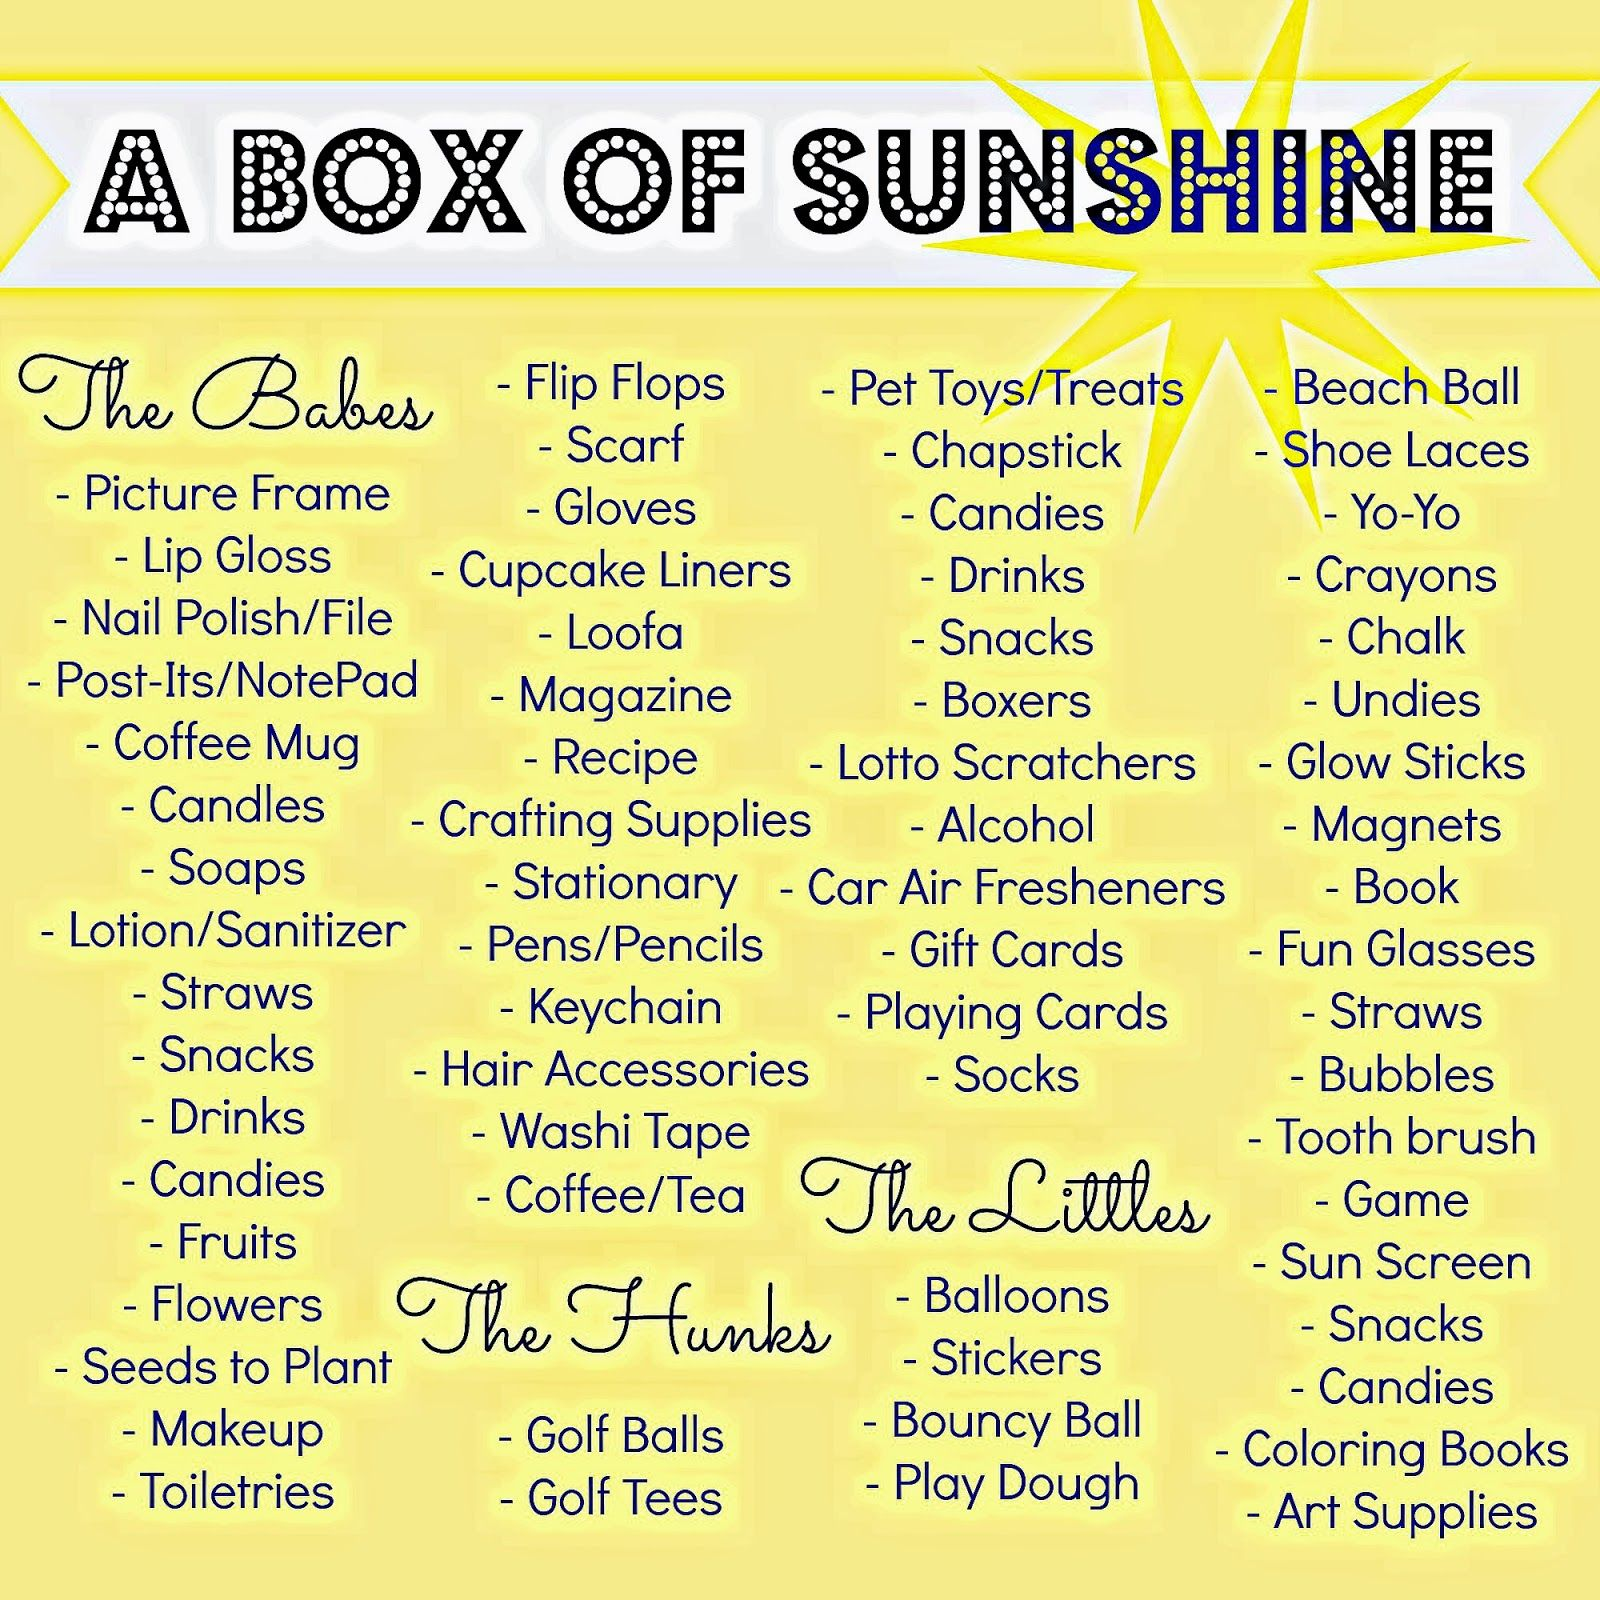 Item Idea List For Things To Include In A Box Of Sunshine Send Someone Full Fun Great Kids Or Adults Brighten Someones Day See The